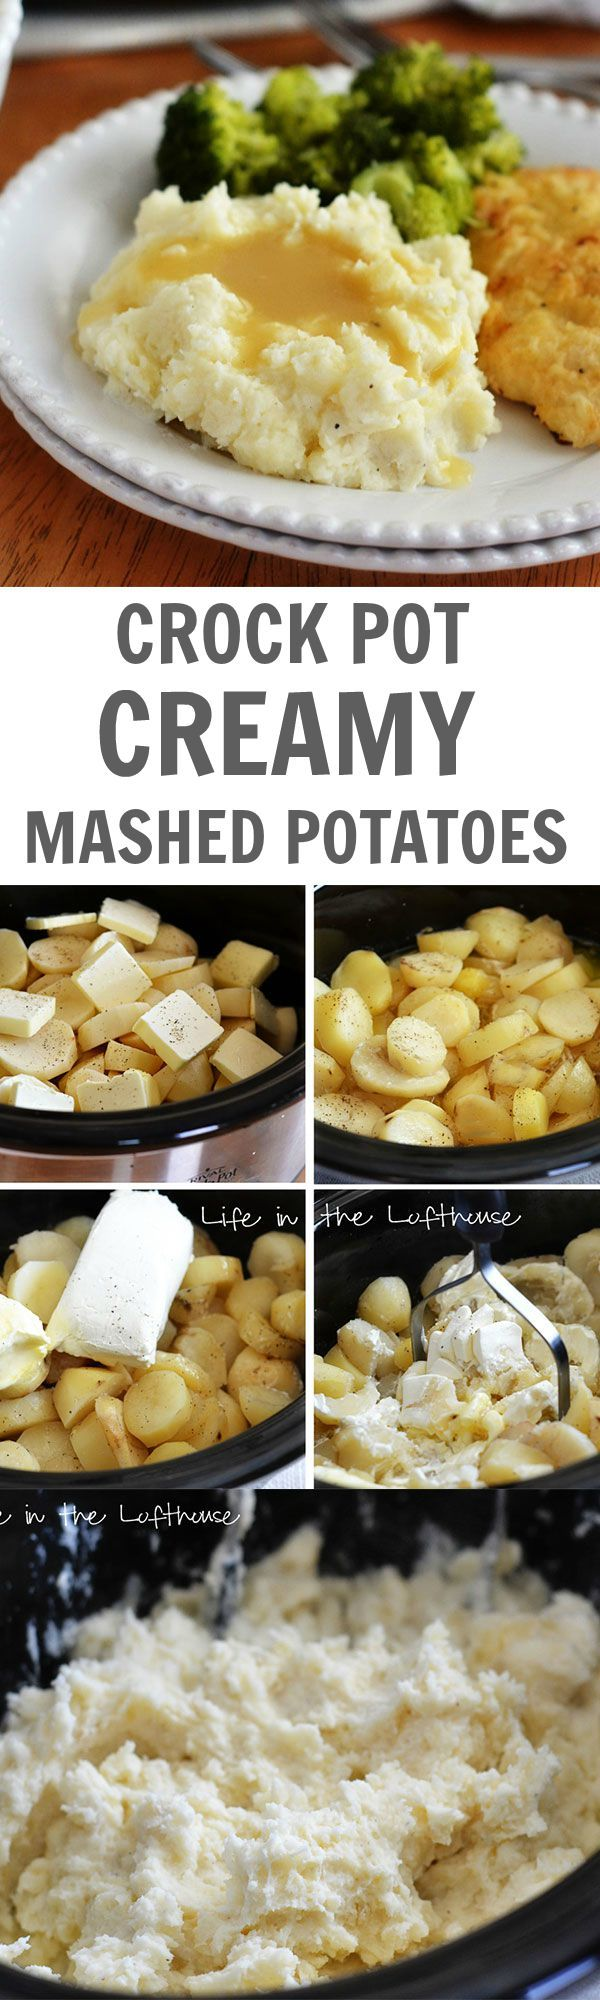 I figured since I started off the week with a side dish, I'd keep them coming. Today I'm sharing these amazing and creamy mashed potatoes that are made in the crock pot! Yep, you heard read that right, made in the crock pot! These crock pot mashed potatoes are dreamy heaven and such... Read More »